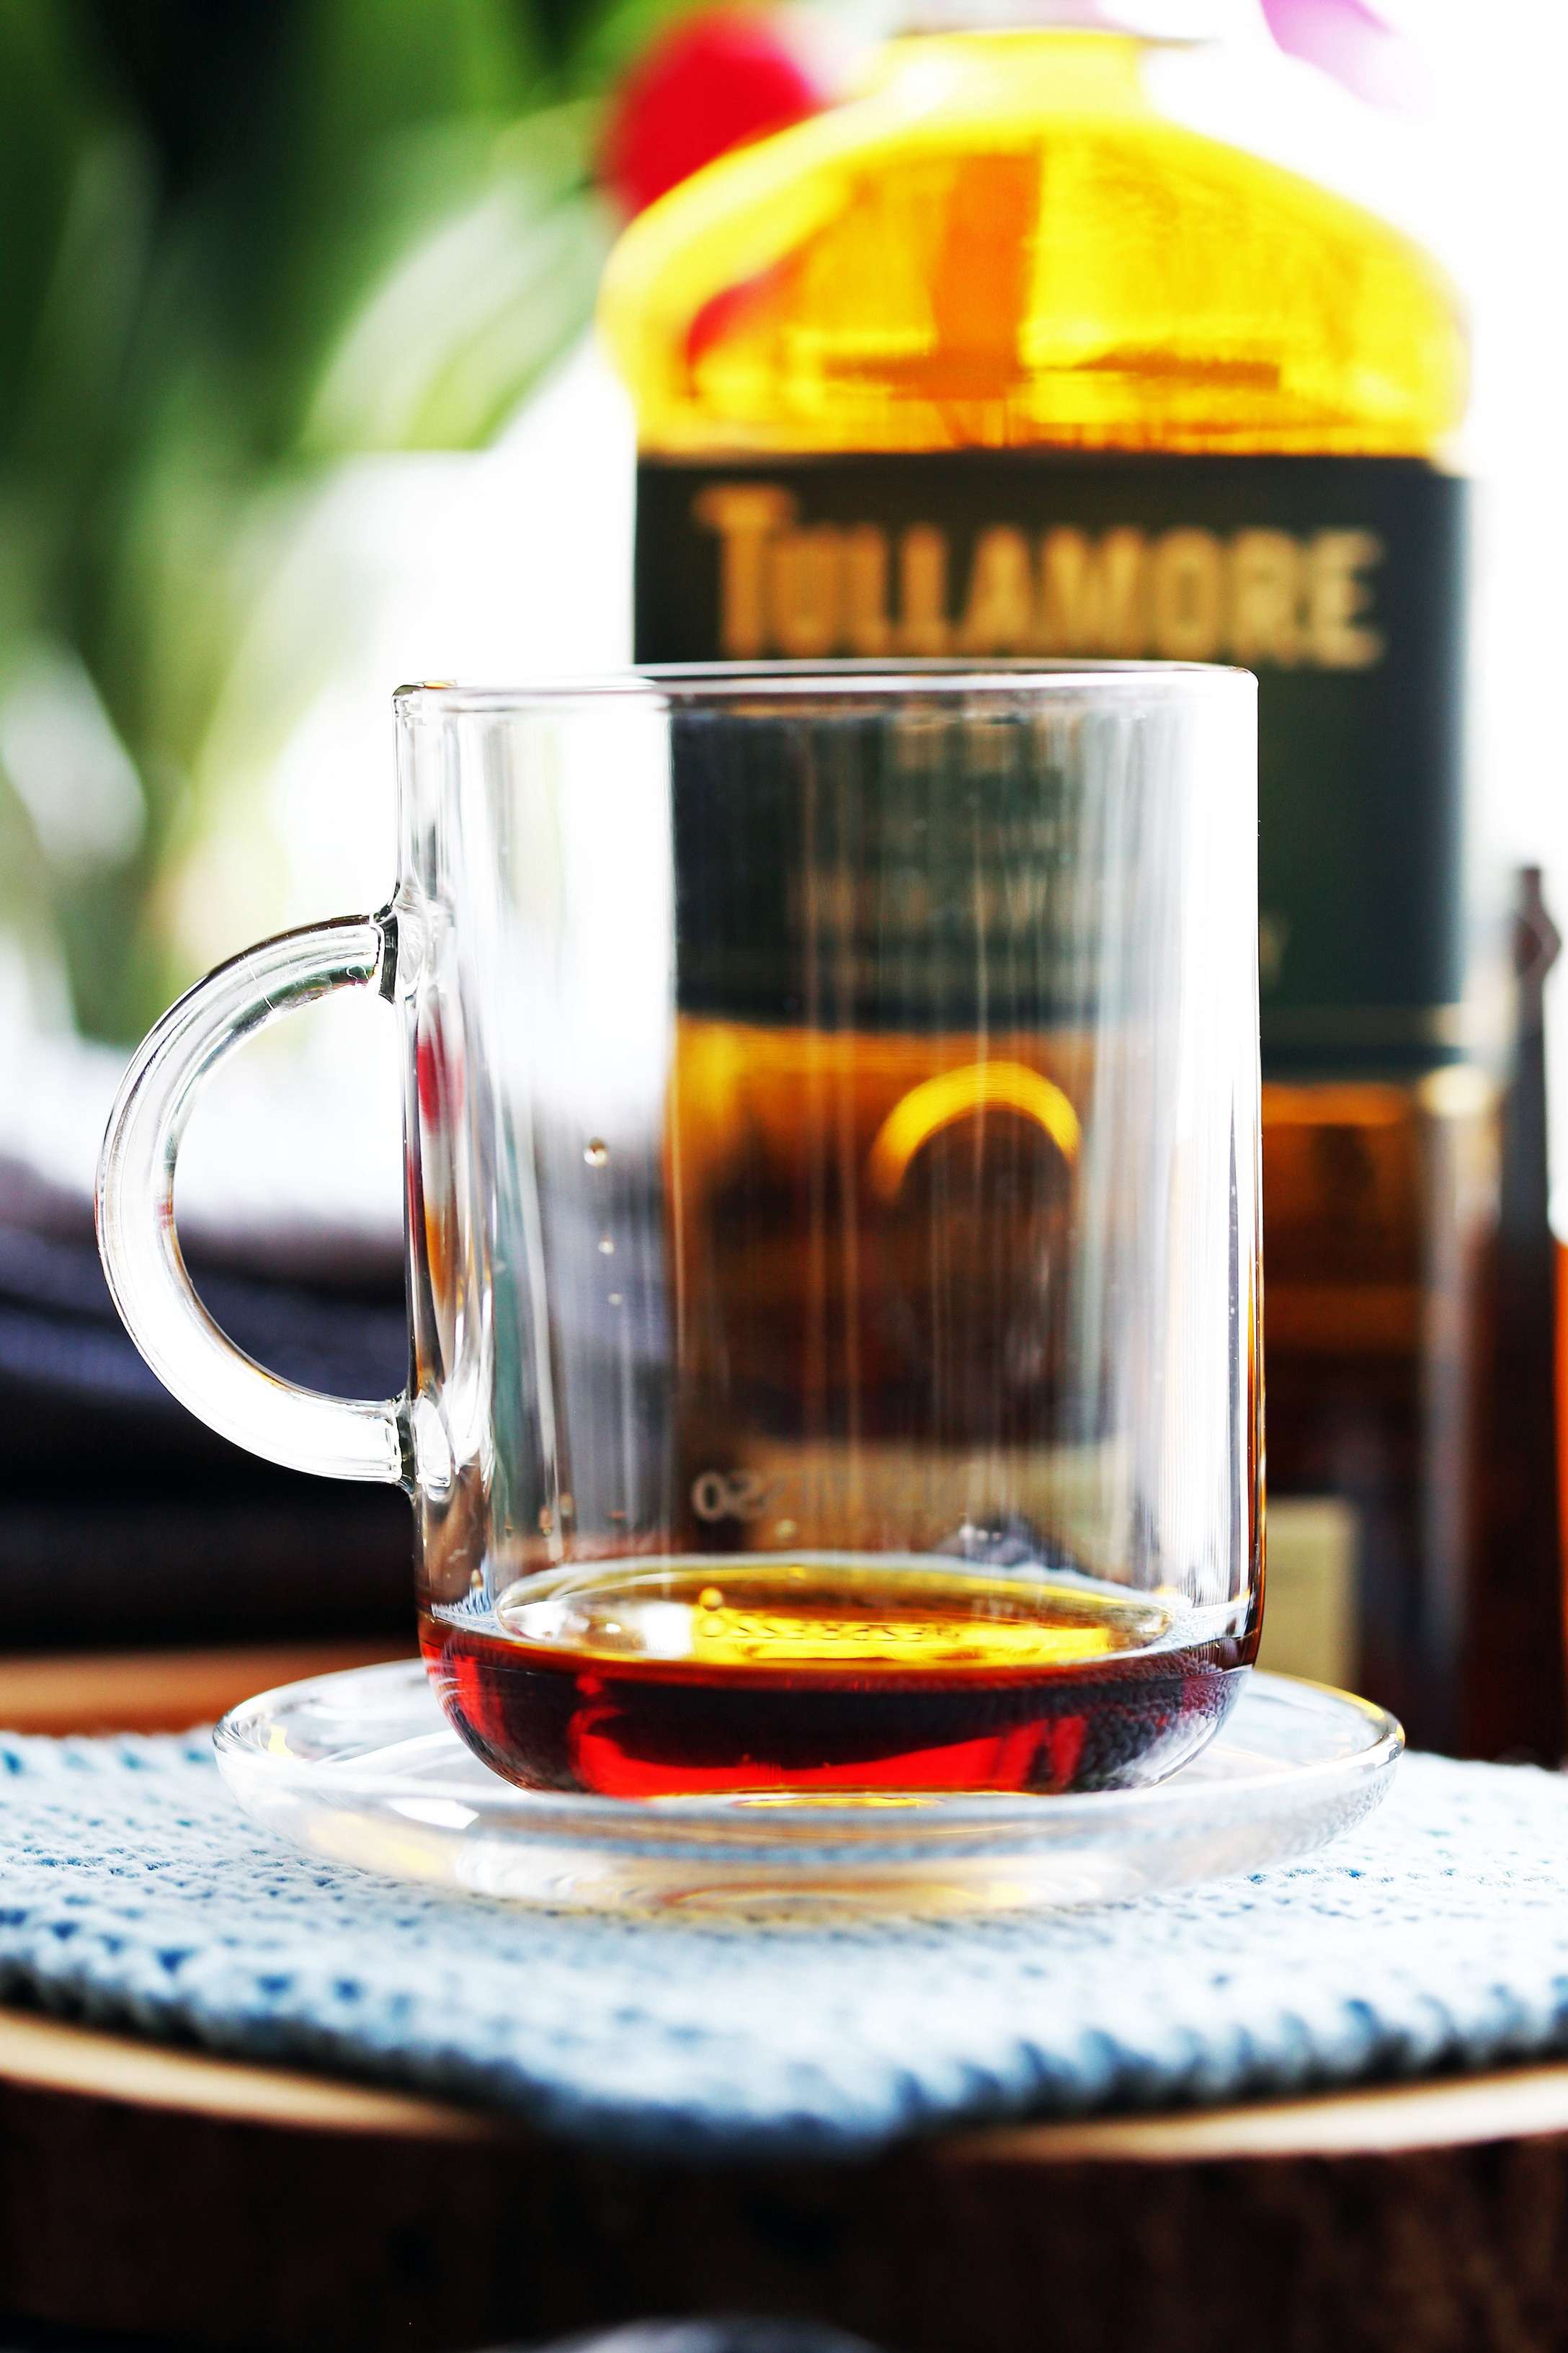 A side view of a glass mug filled with two tablespoons of maple syrup.